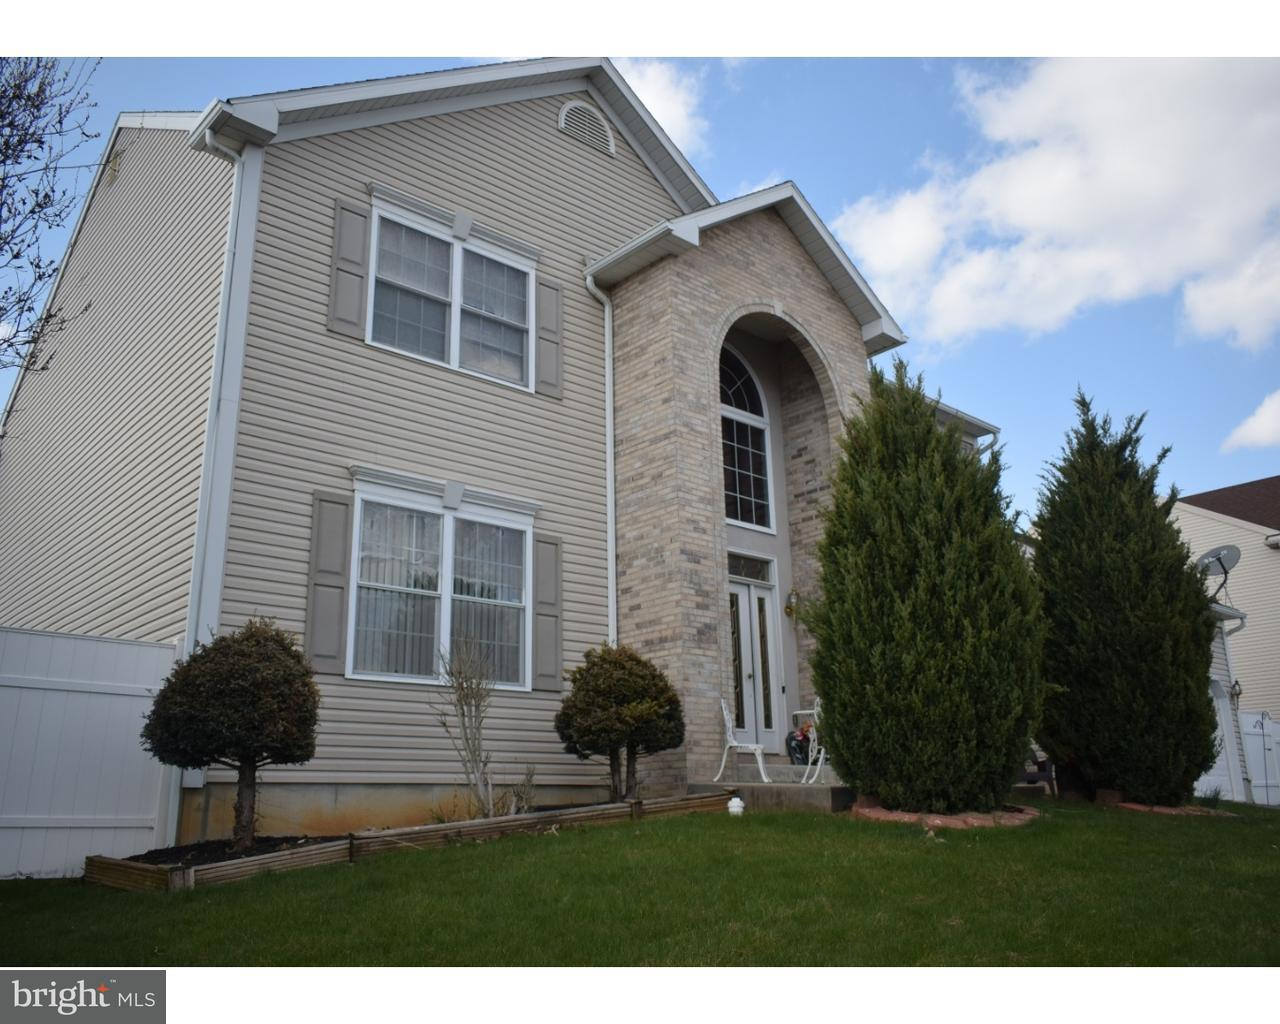 47 VERSAILLES CT, READING - Listed at $302,000, READING